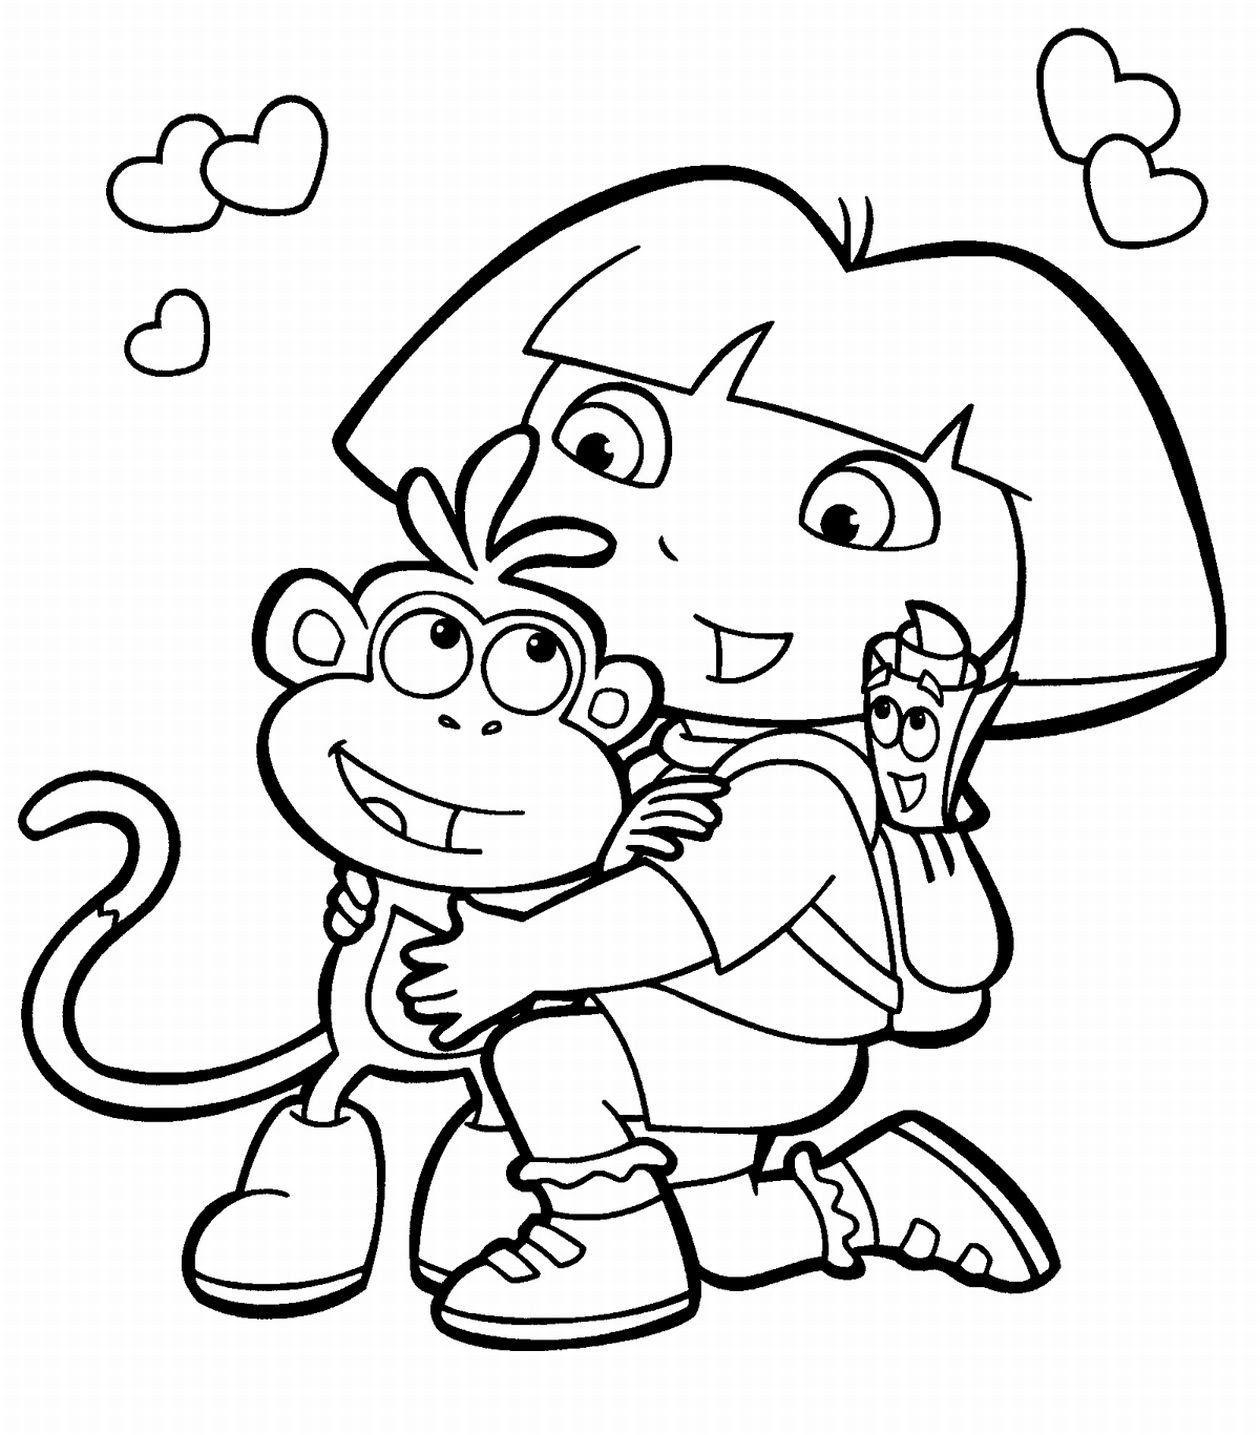 Online For Kid Coloring Pages Printable Free 88 For Your Line